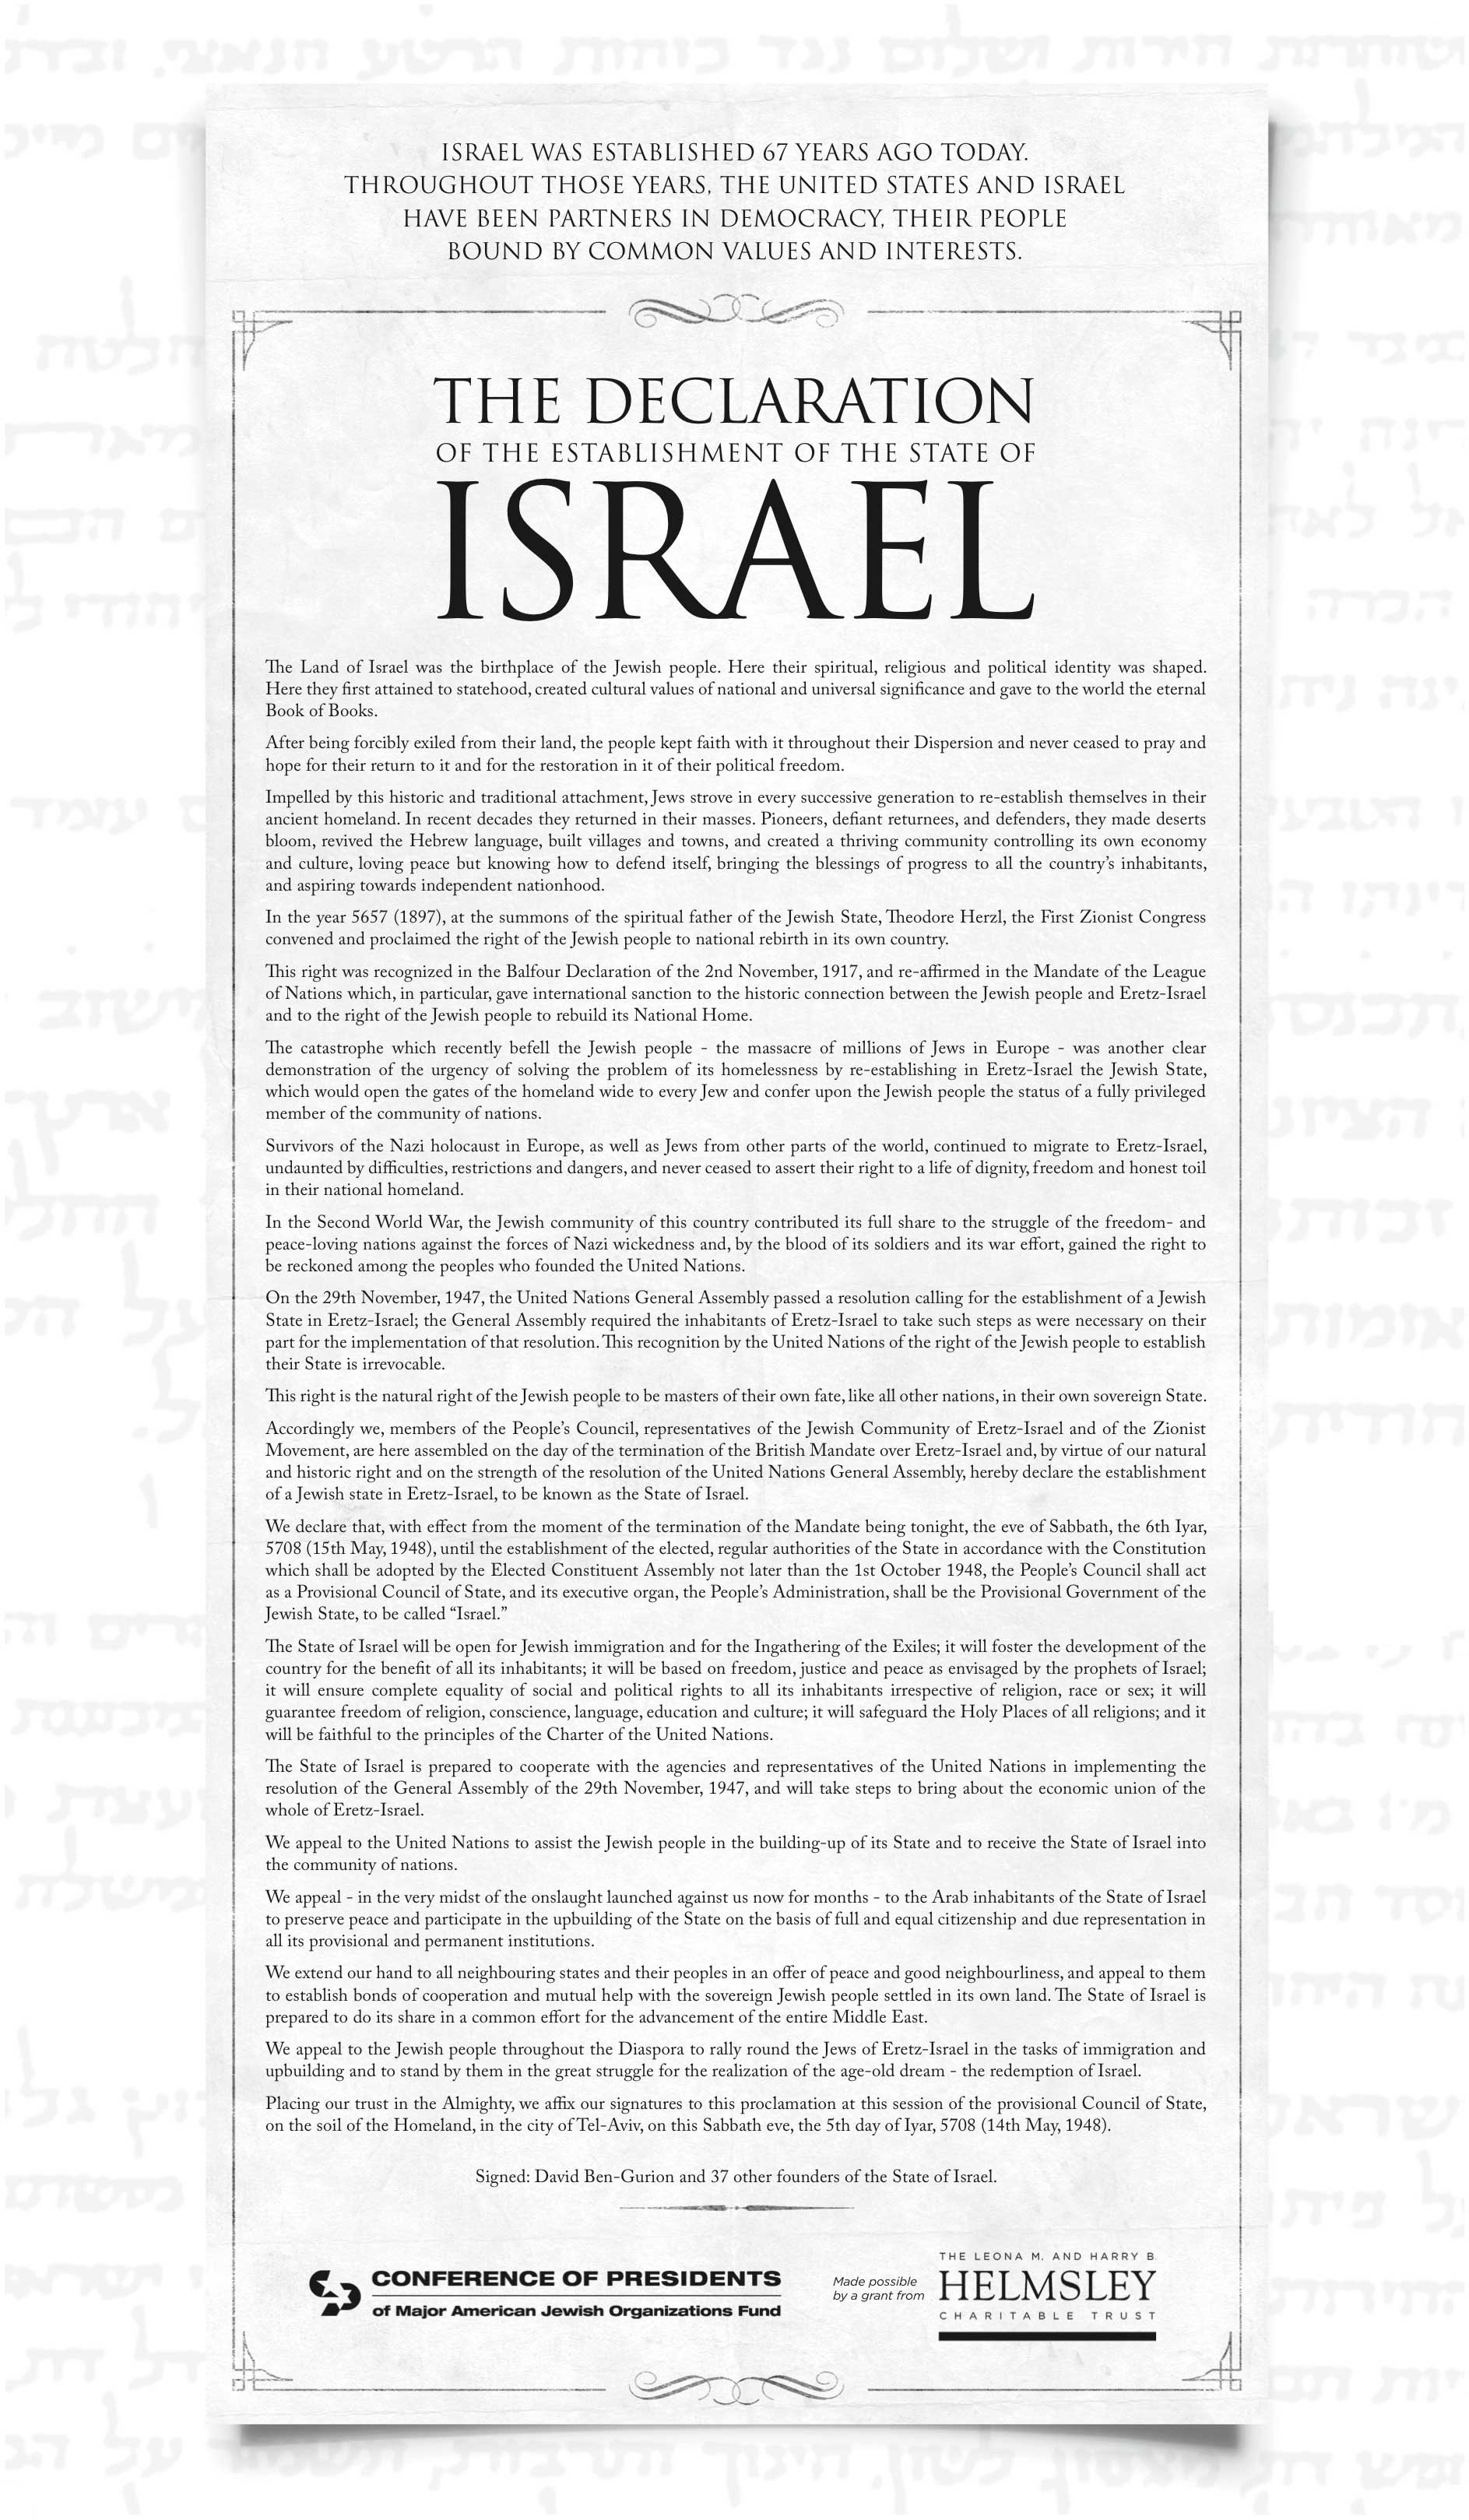 The Declaration Of The Establishment Of The State Of